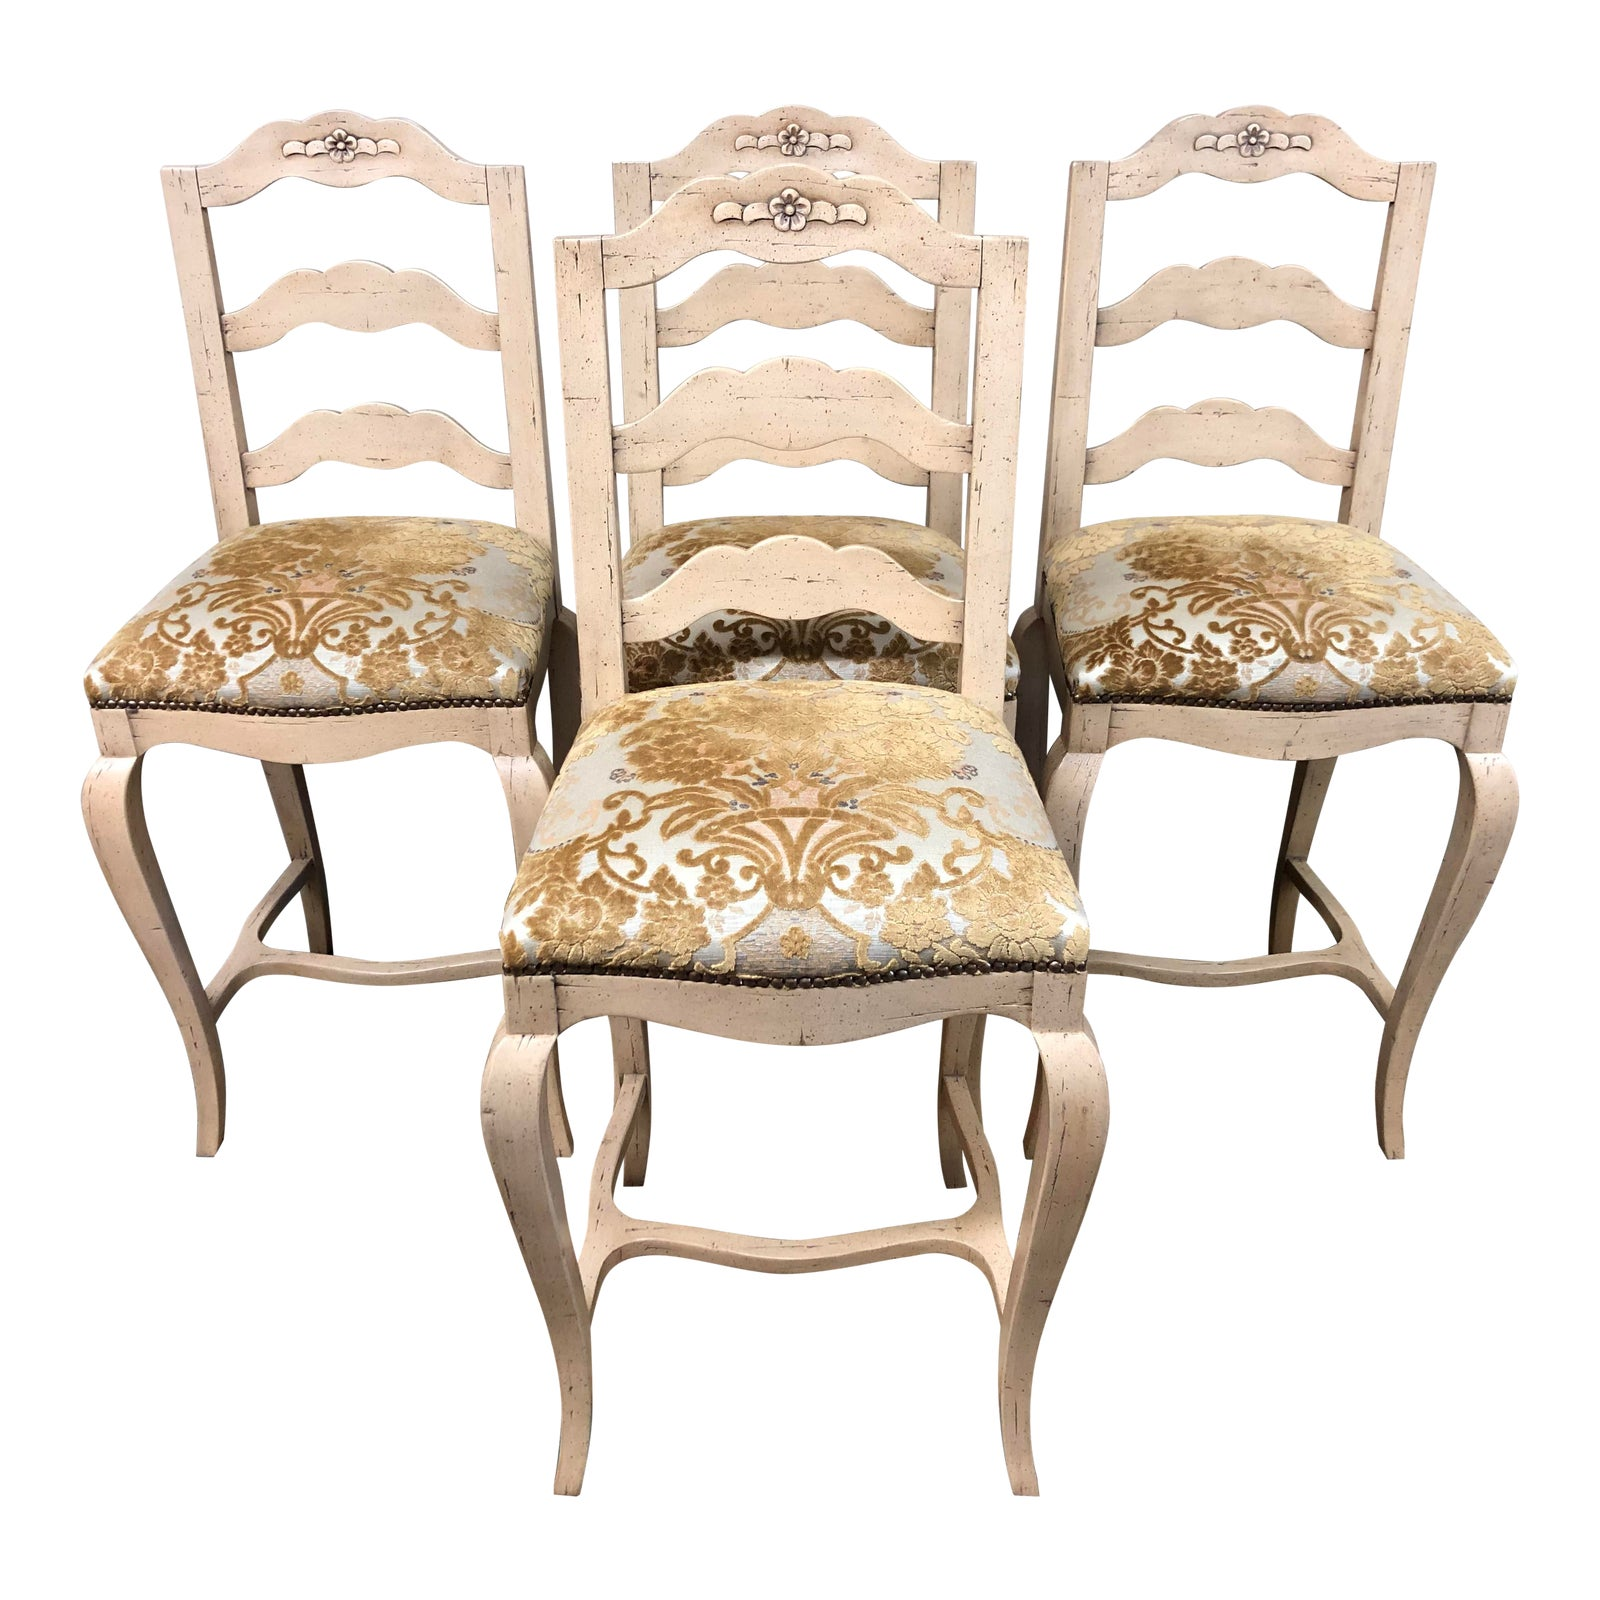 Super Chaddock French Country Bar Stools Set Of Four Bralicious Painted Fabric Chair Ideas Braliciousco